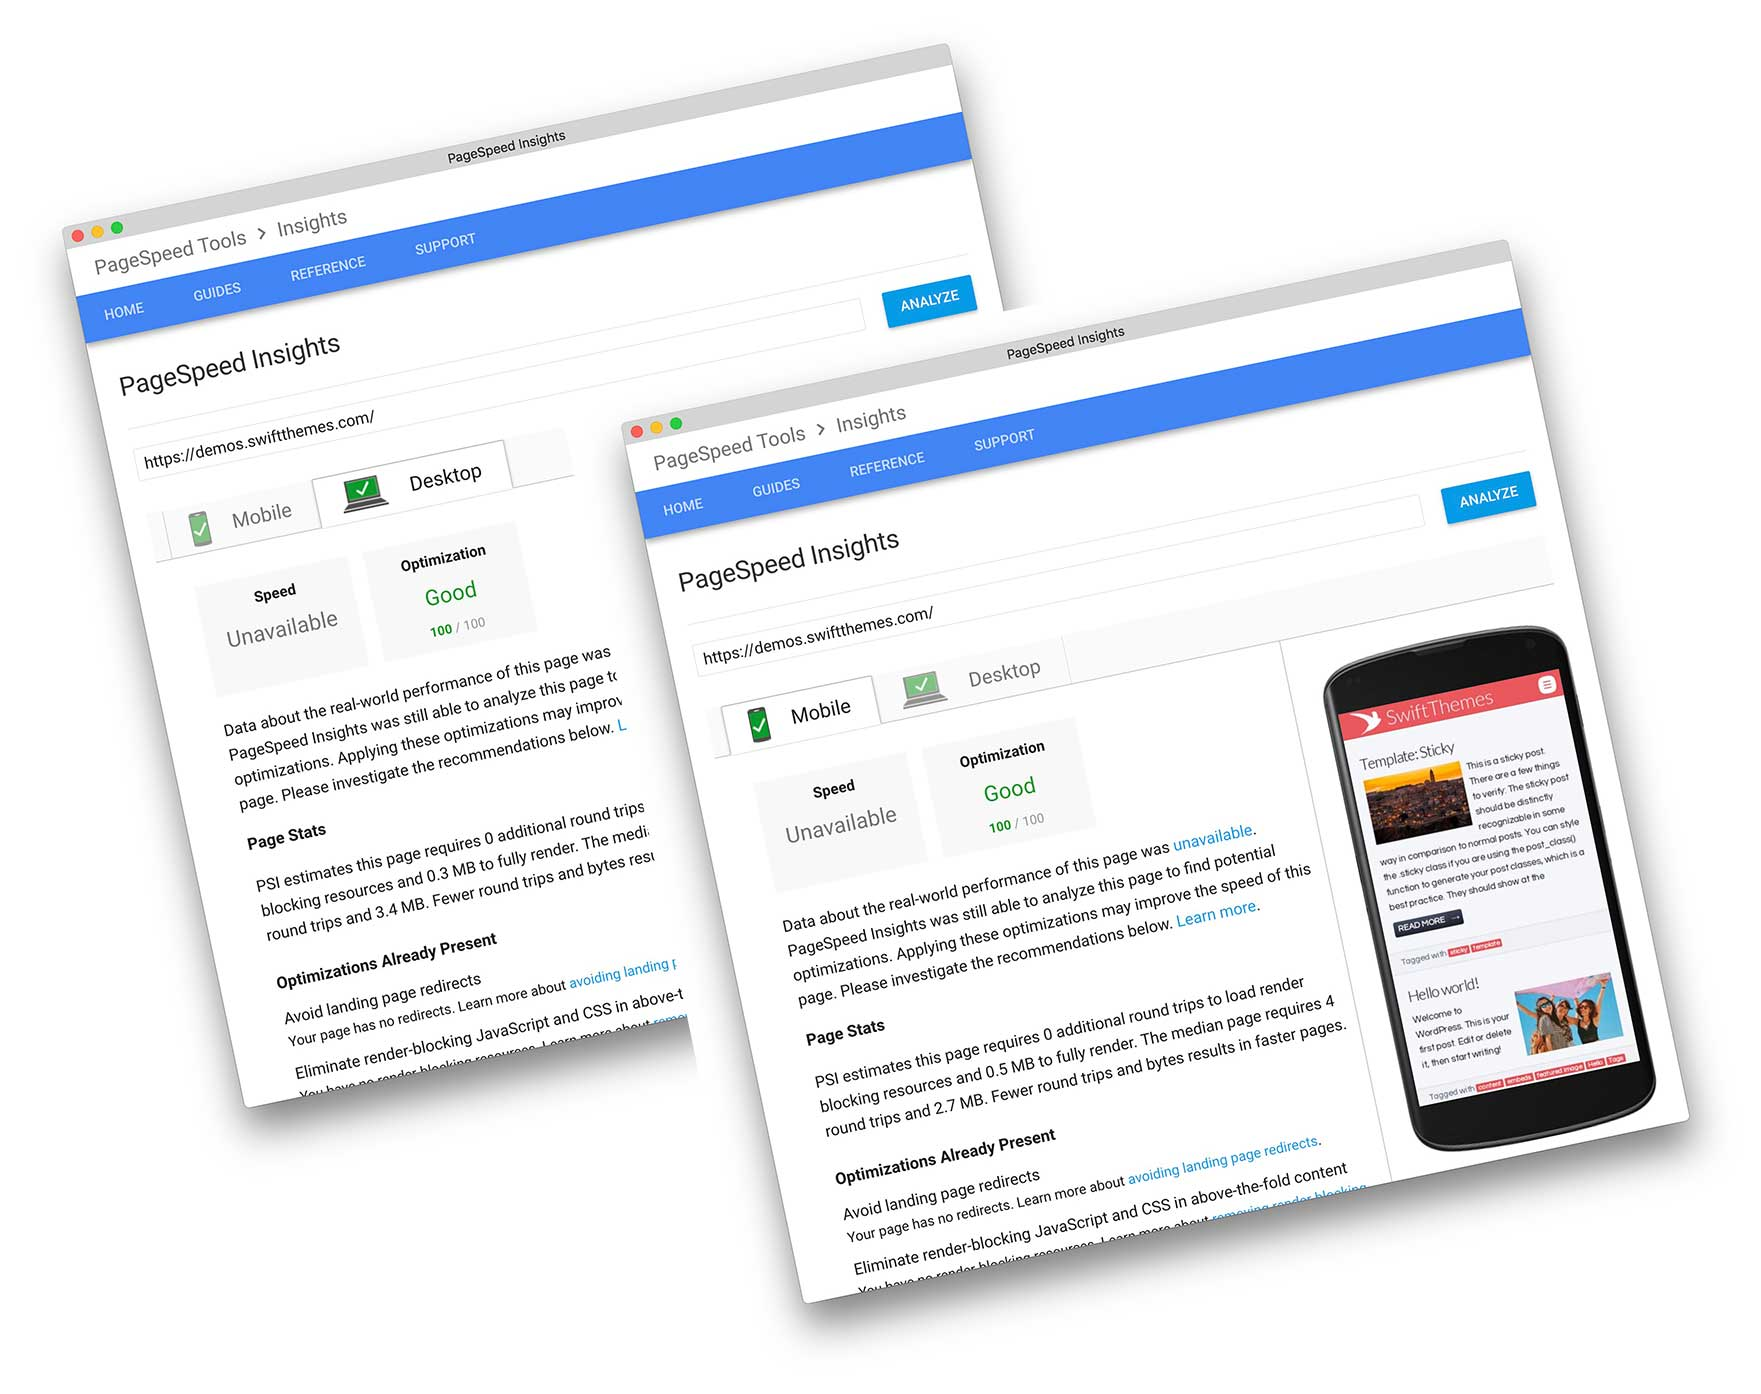 Get 100 Page Speed score for Mobile and Desktops